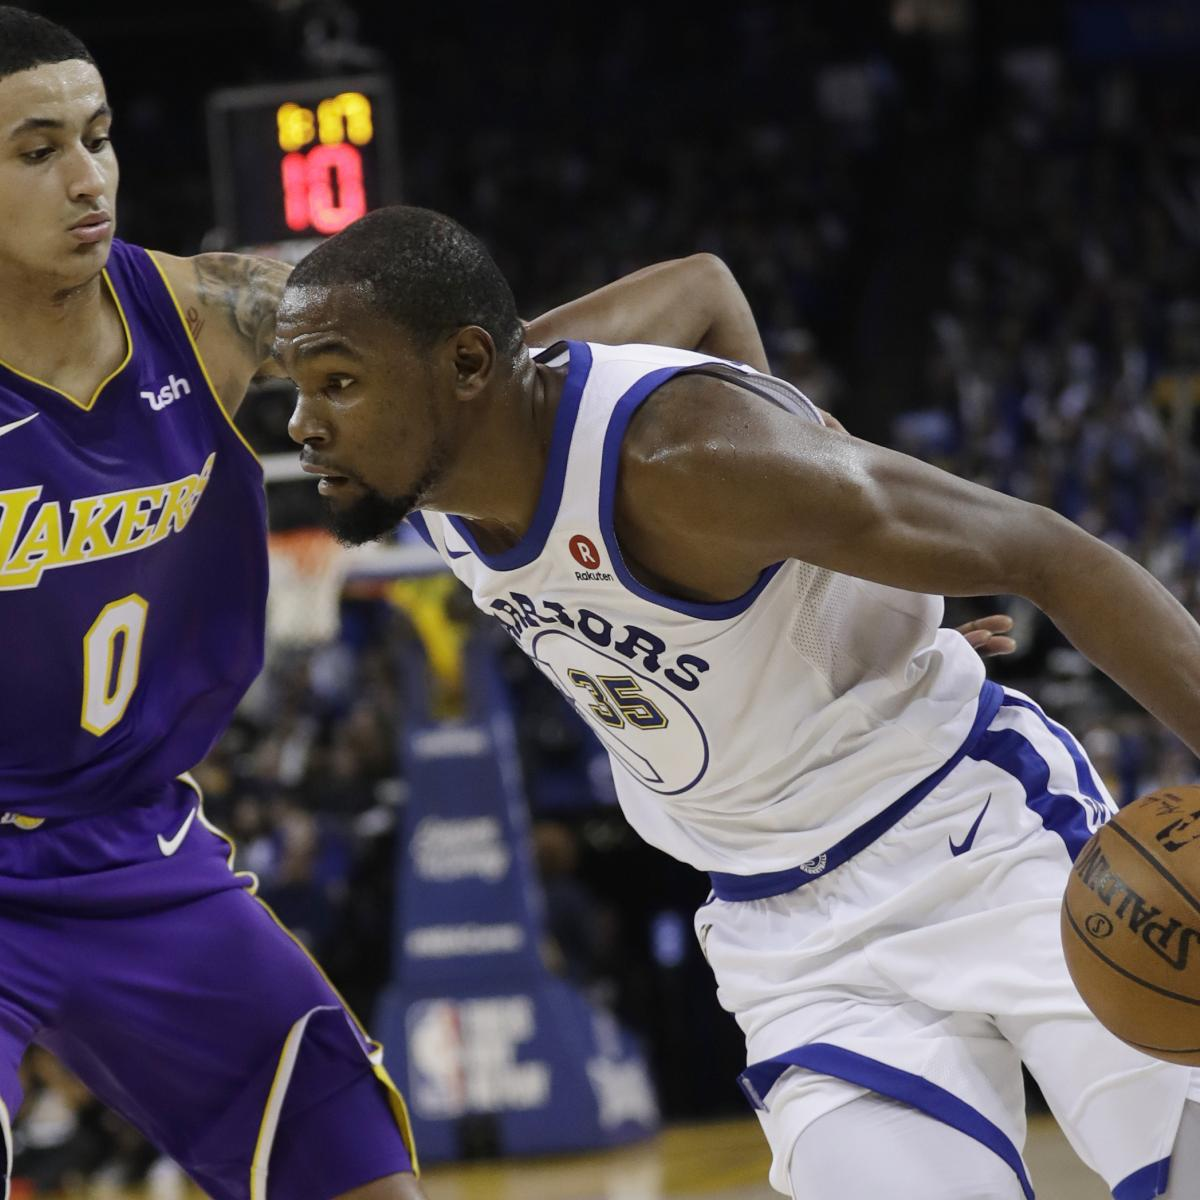 8b8c95f3873e The Golden State Warriors and Los Angeles Lakers have the most expensive  tickets on the secondary